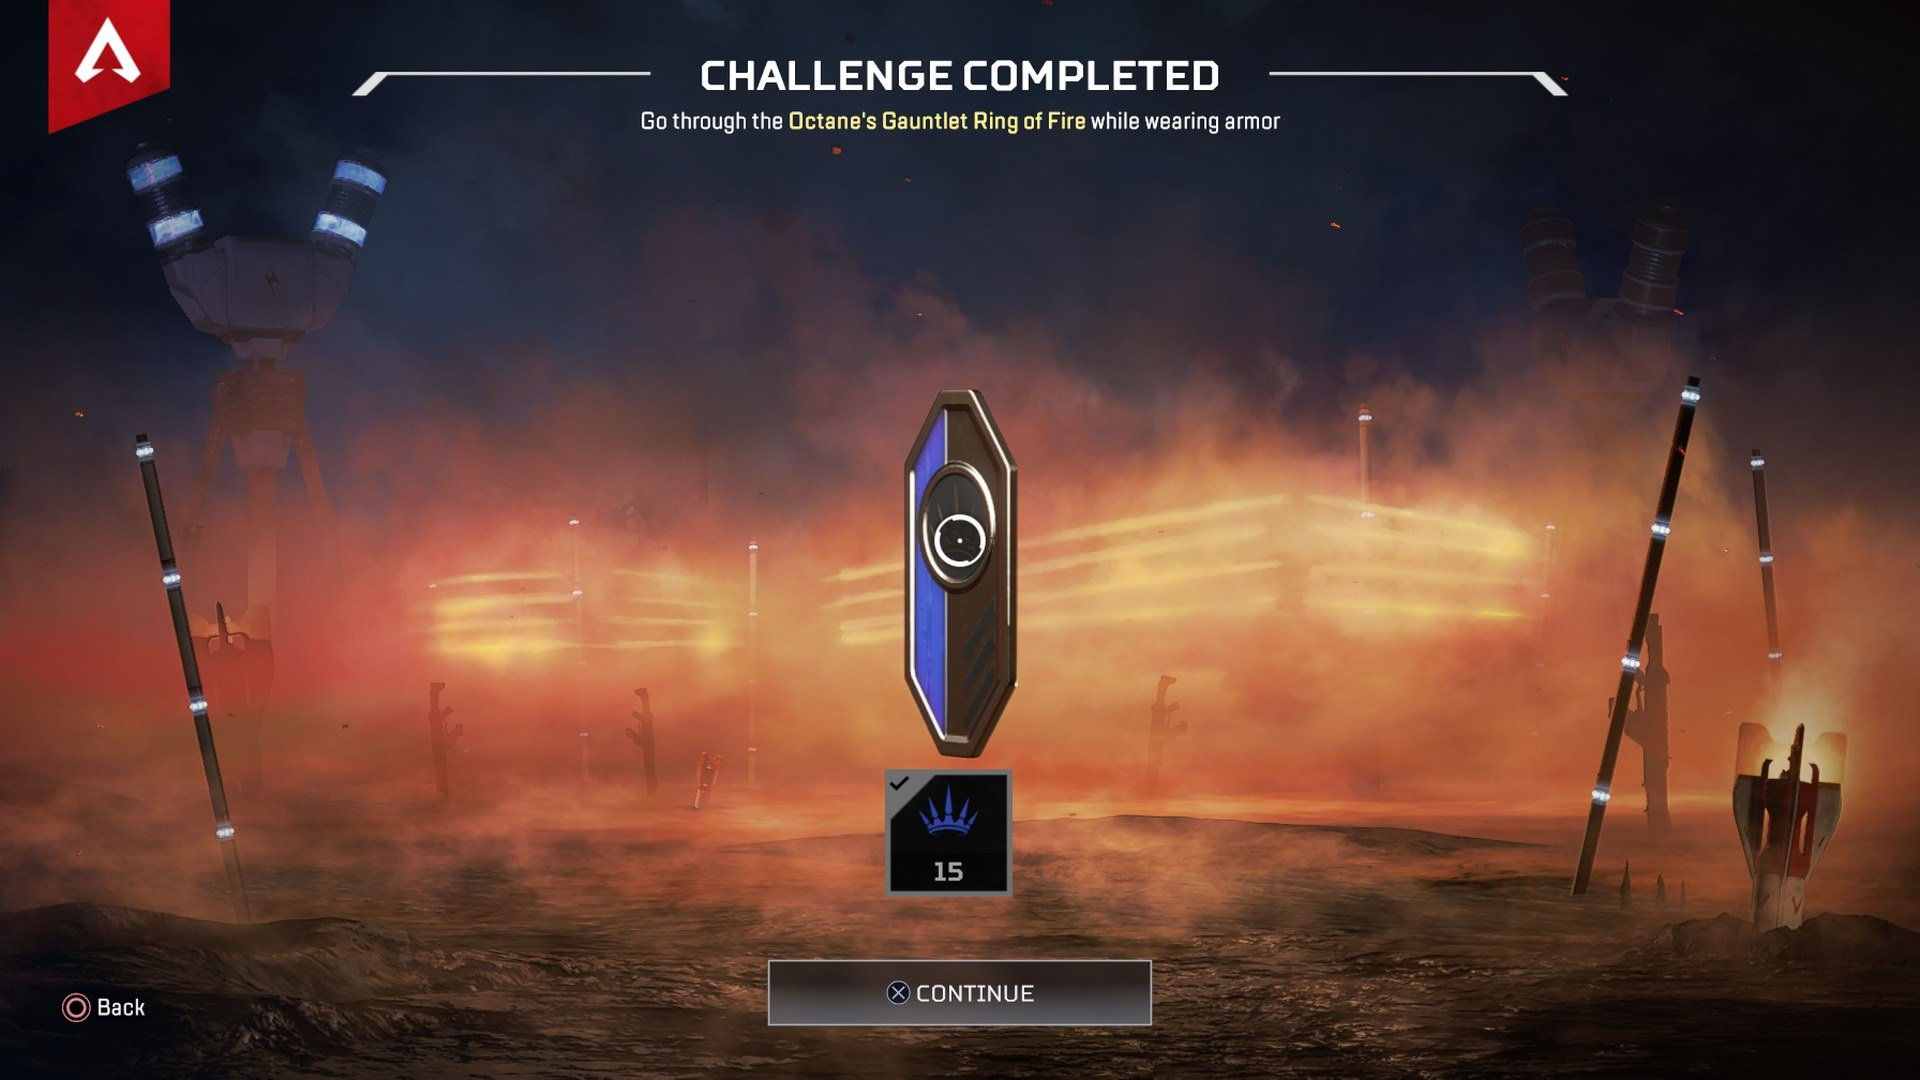 When you complete Octane's Gauntlet Ring of Fire you'll see this completion screen at the end of your Apex Legends match.